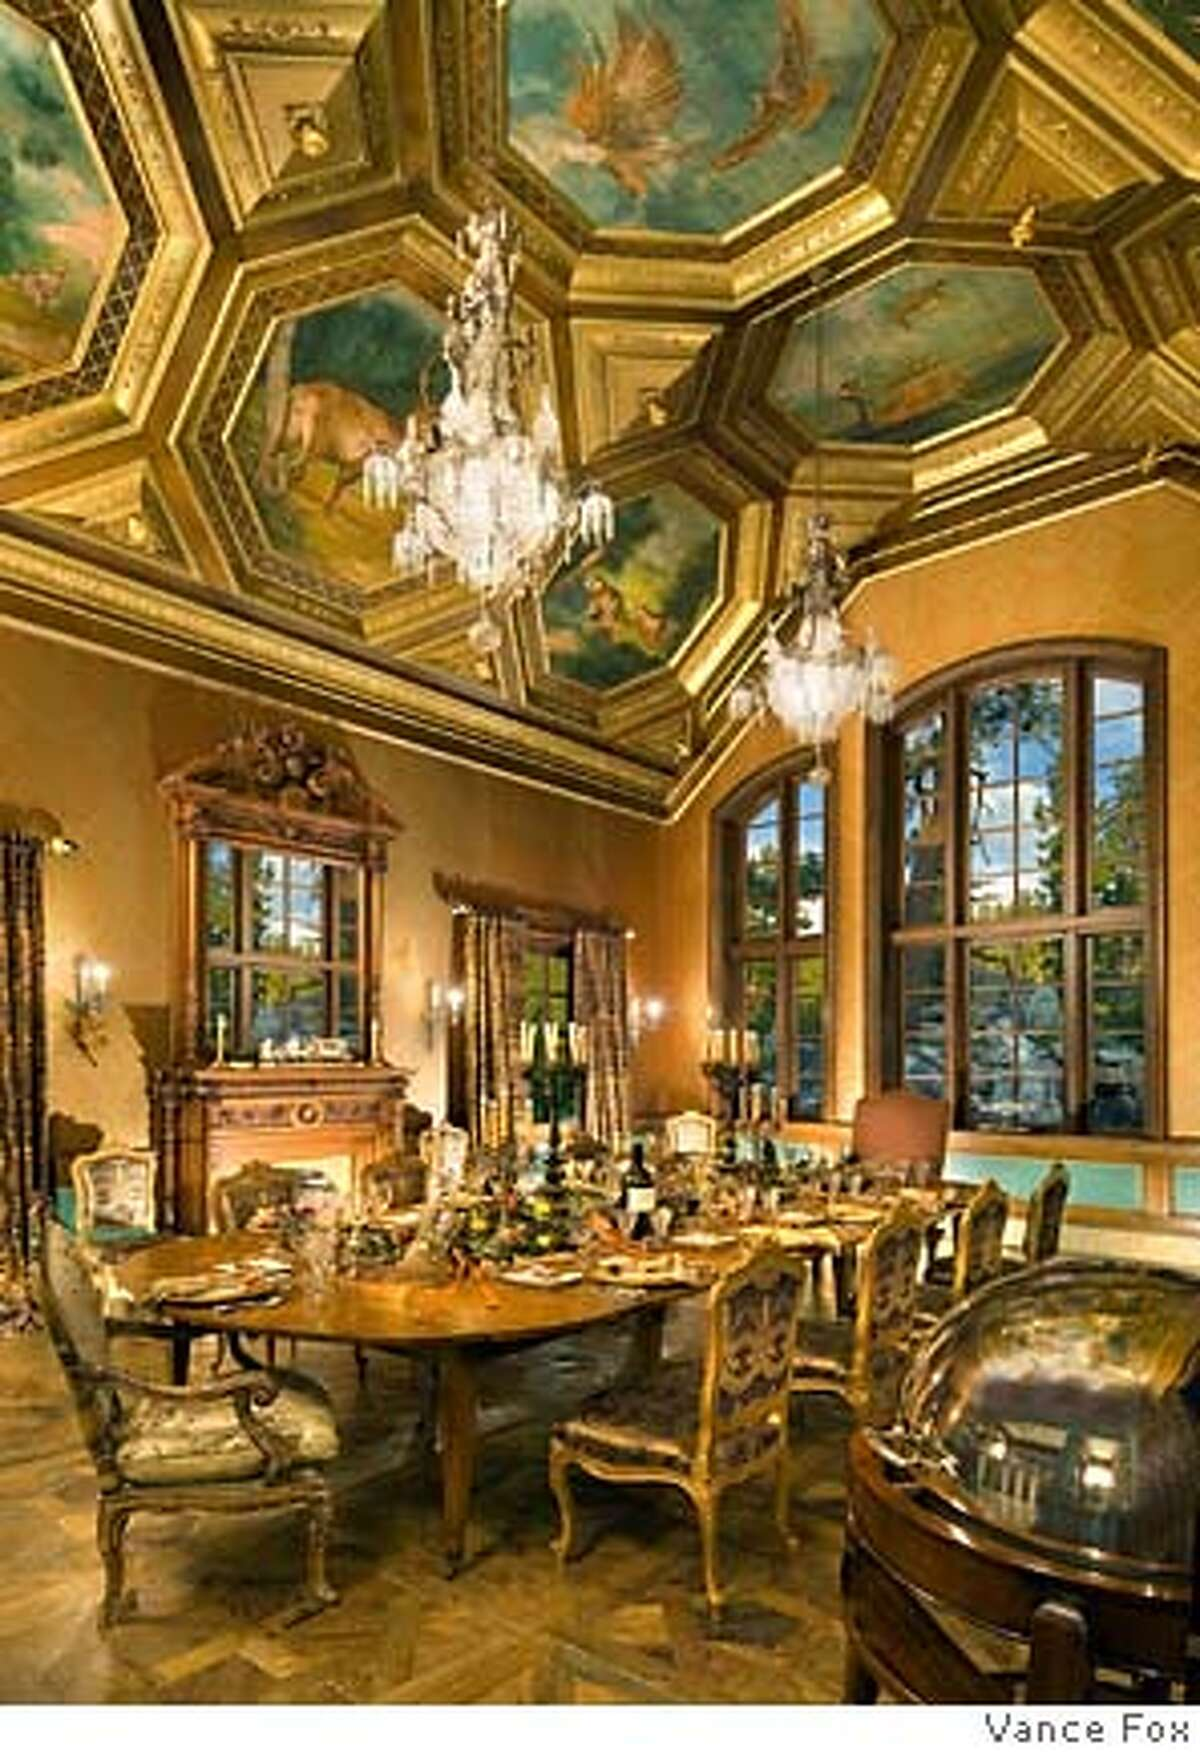 Dining room at Tranquilty, the 210-acre, 9-building compound on the eastern shore of Lake Tahoe owned by Tommy Hilfeger co-founder Joel Horowitz and now on the market for $100 million.